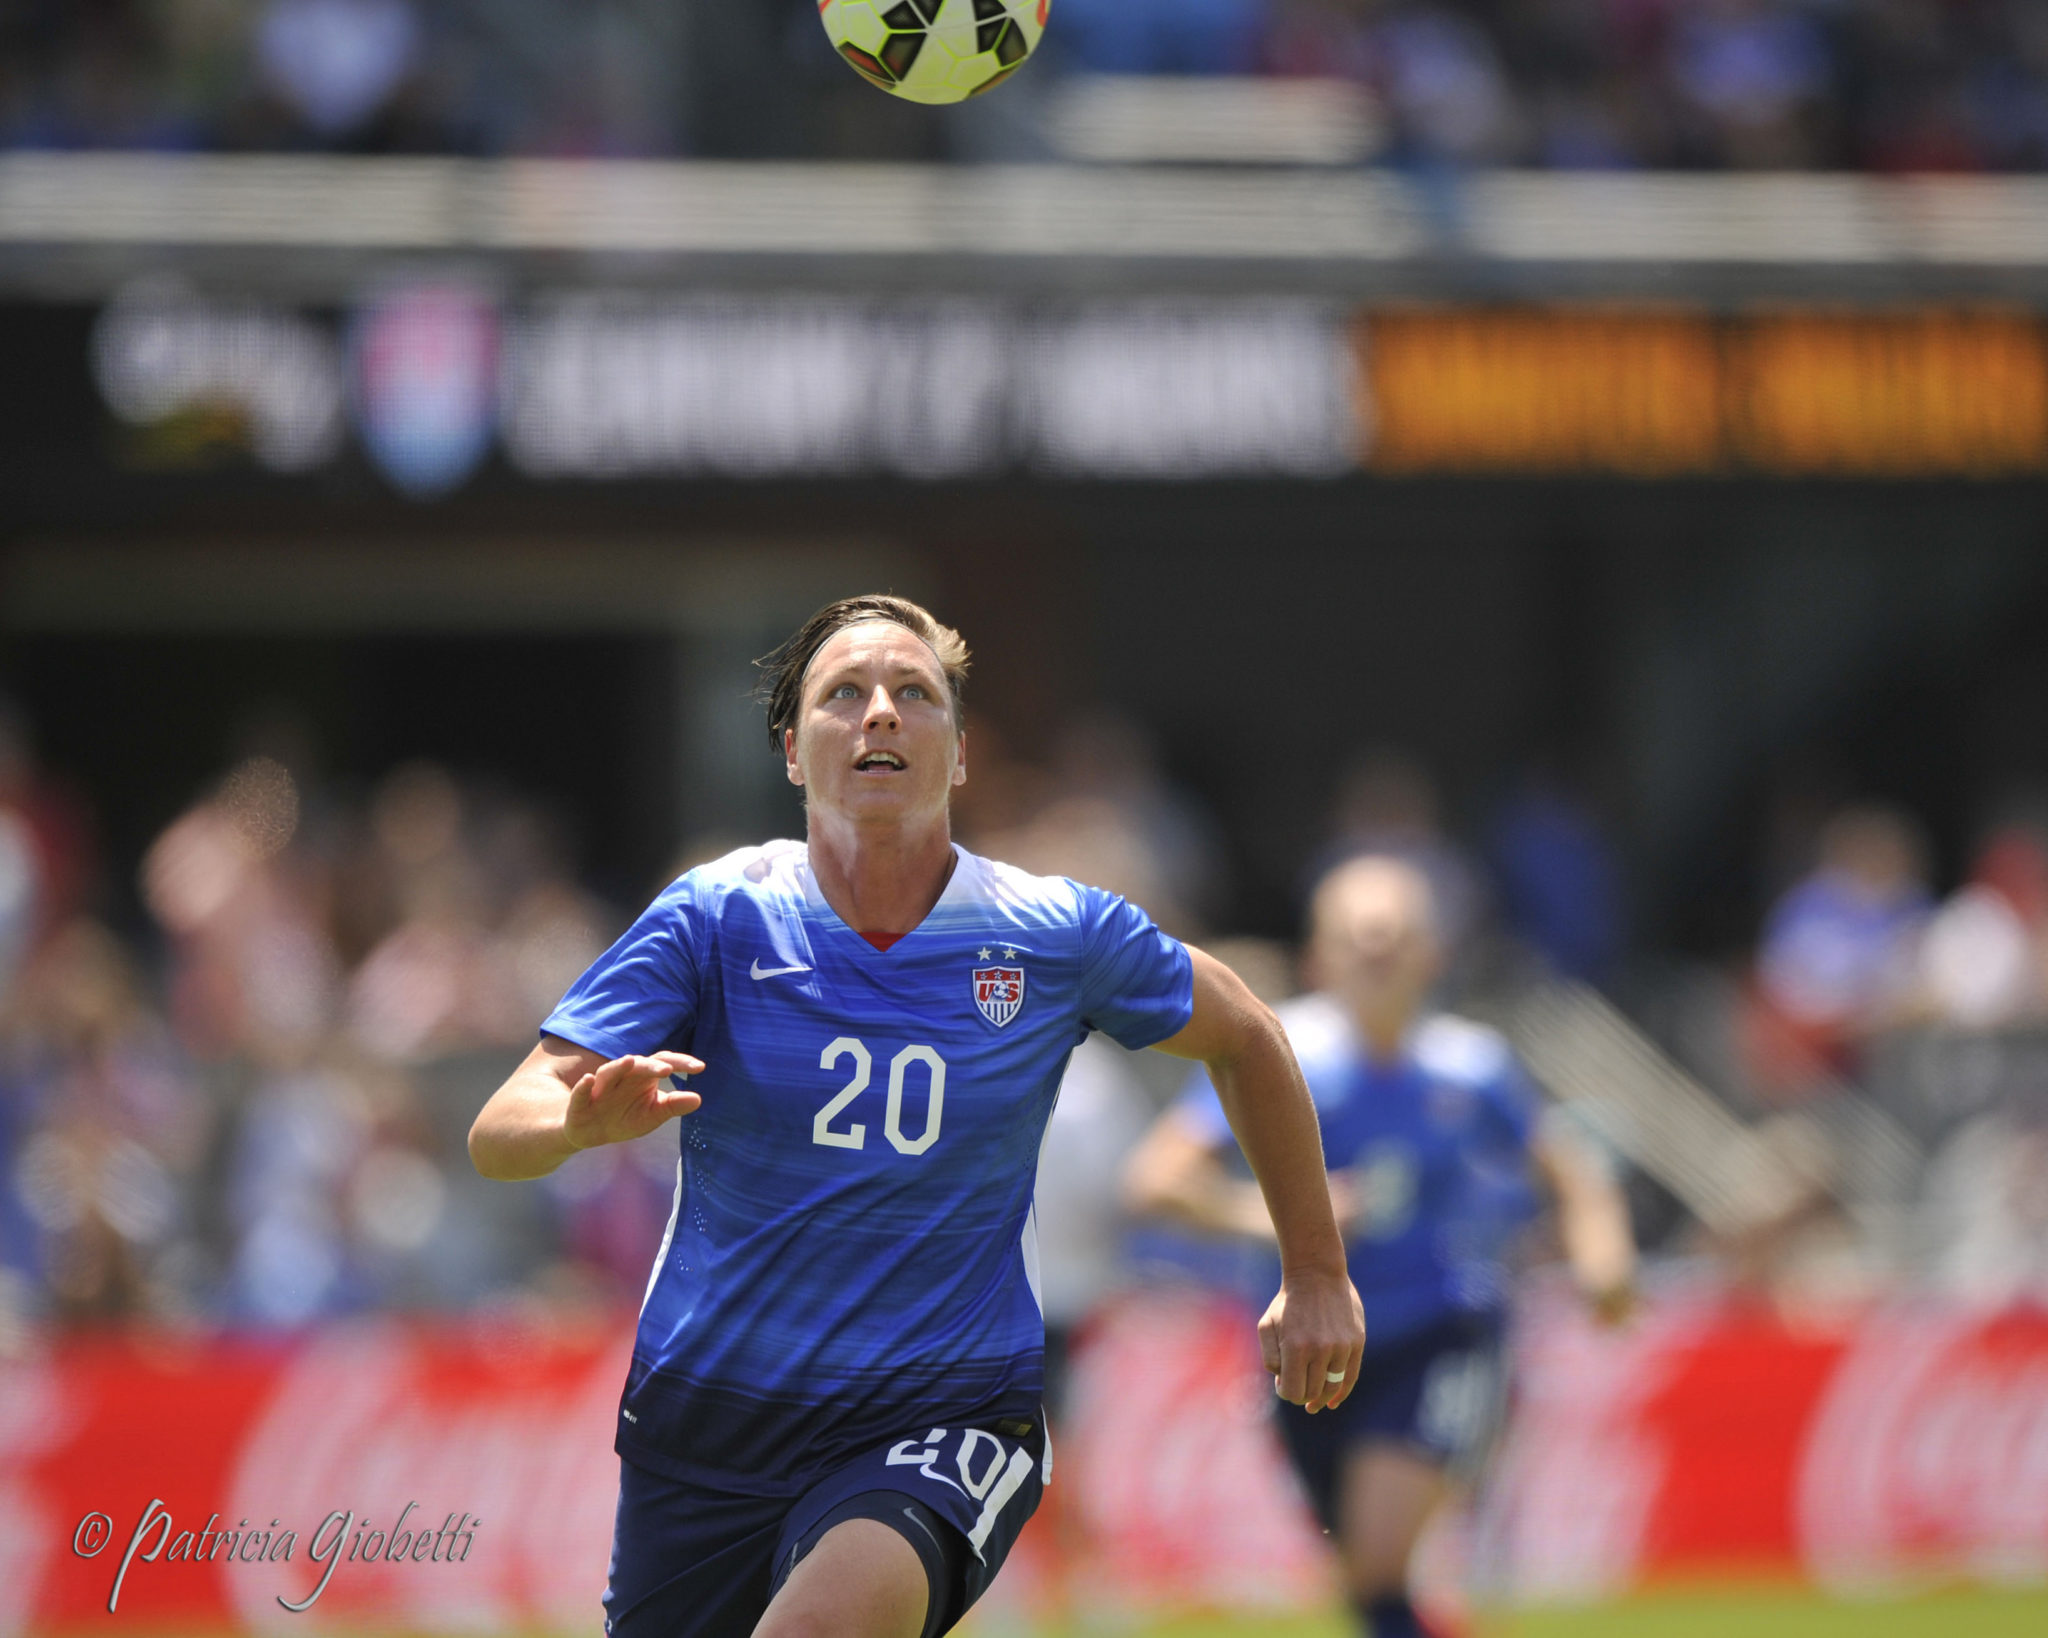 Abby Wambach scored twice on Sunday. (Photo Copyright Patricia Giobetti for The Equalizer)